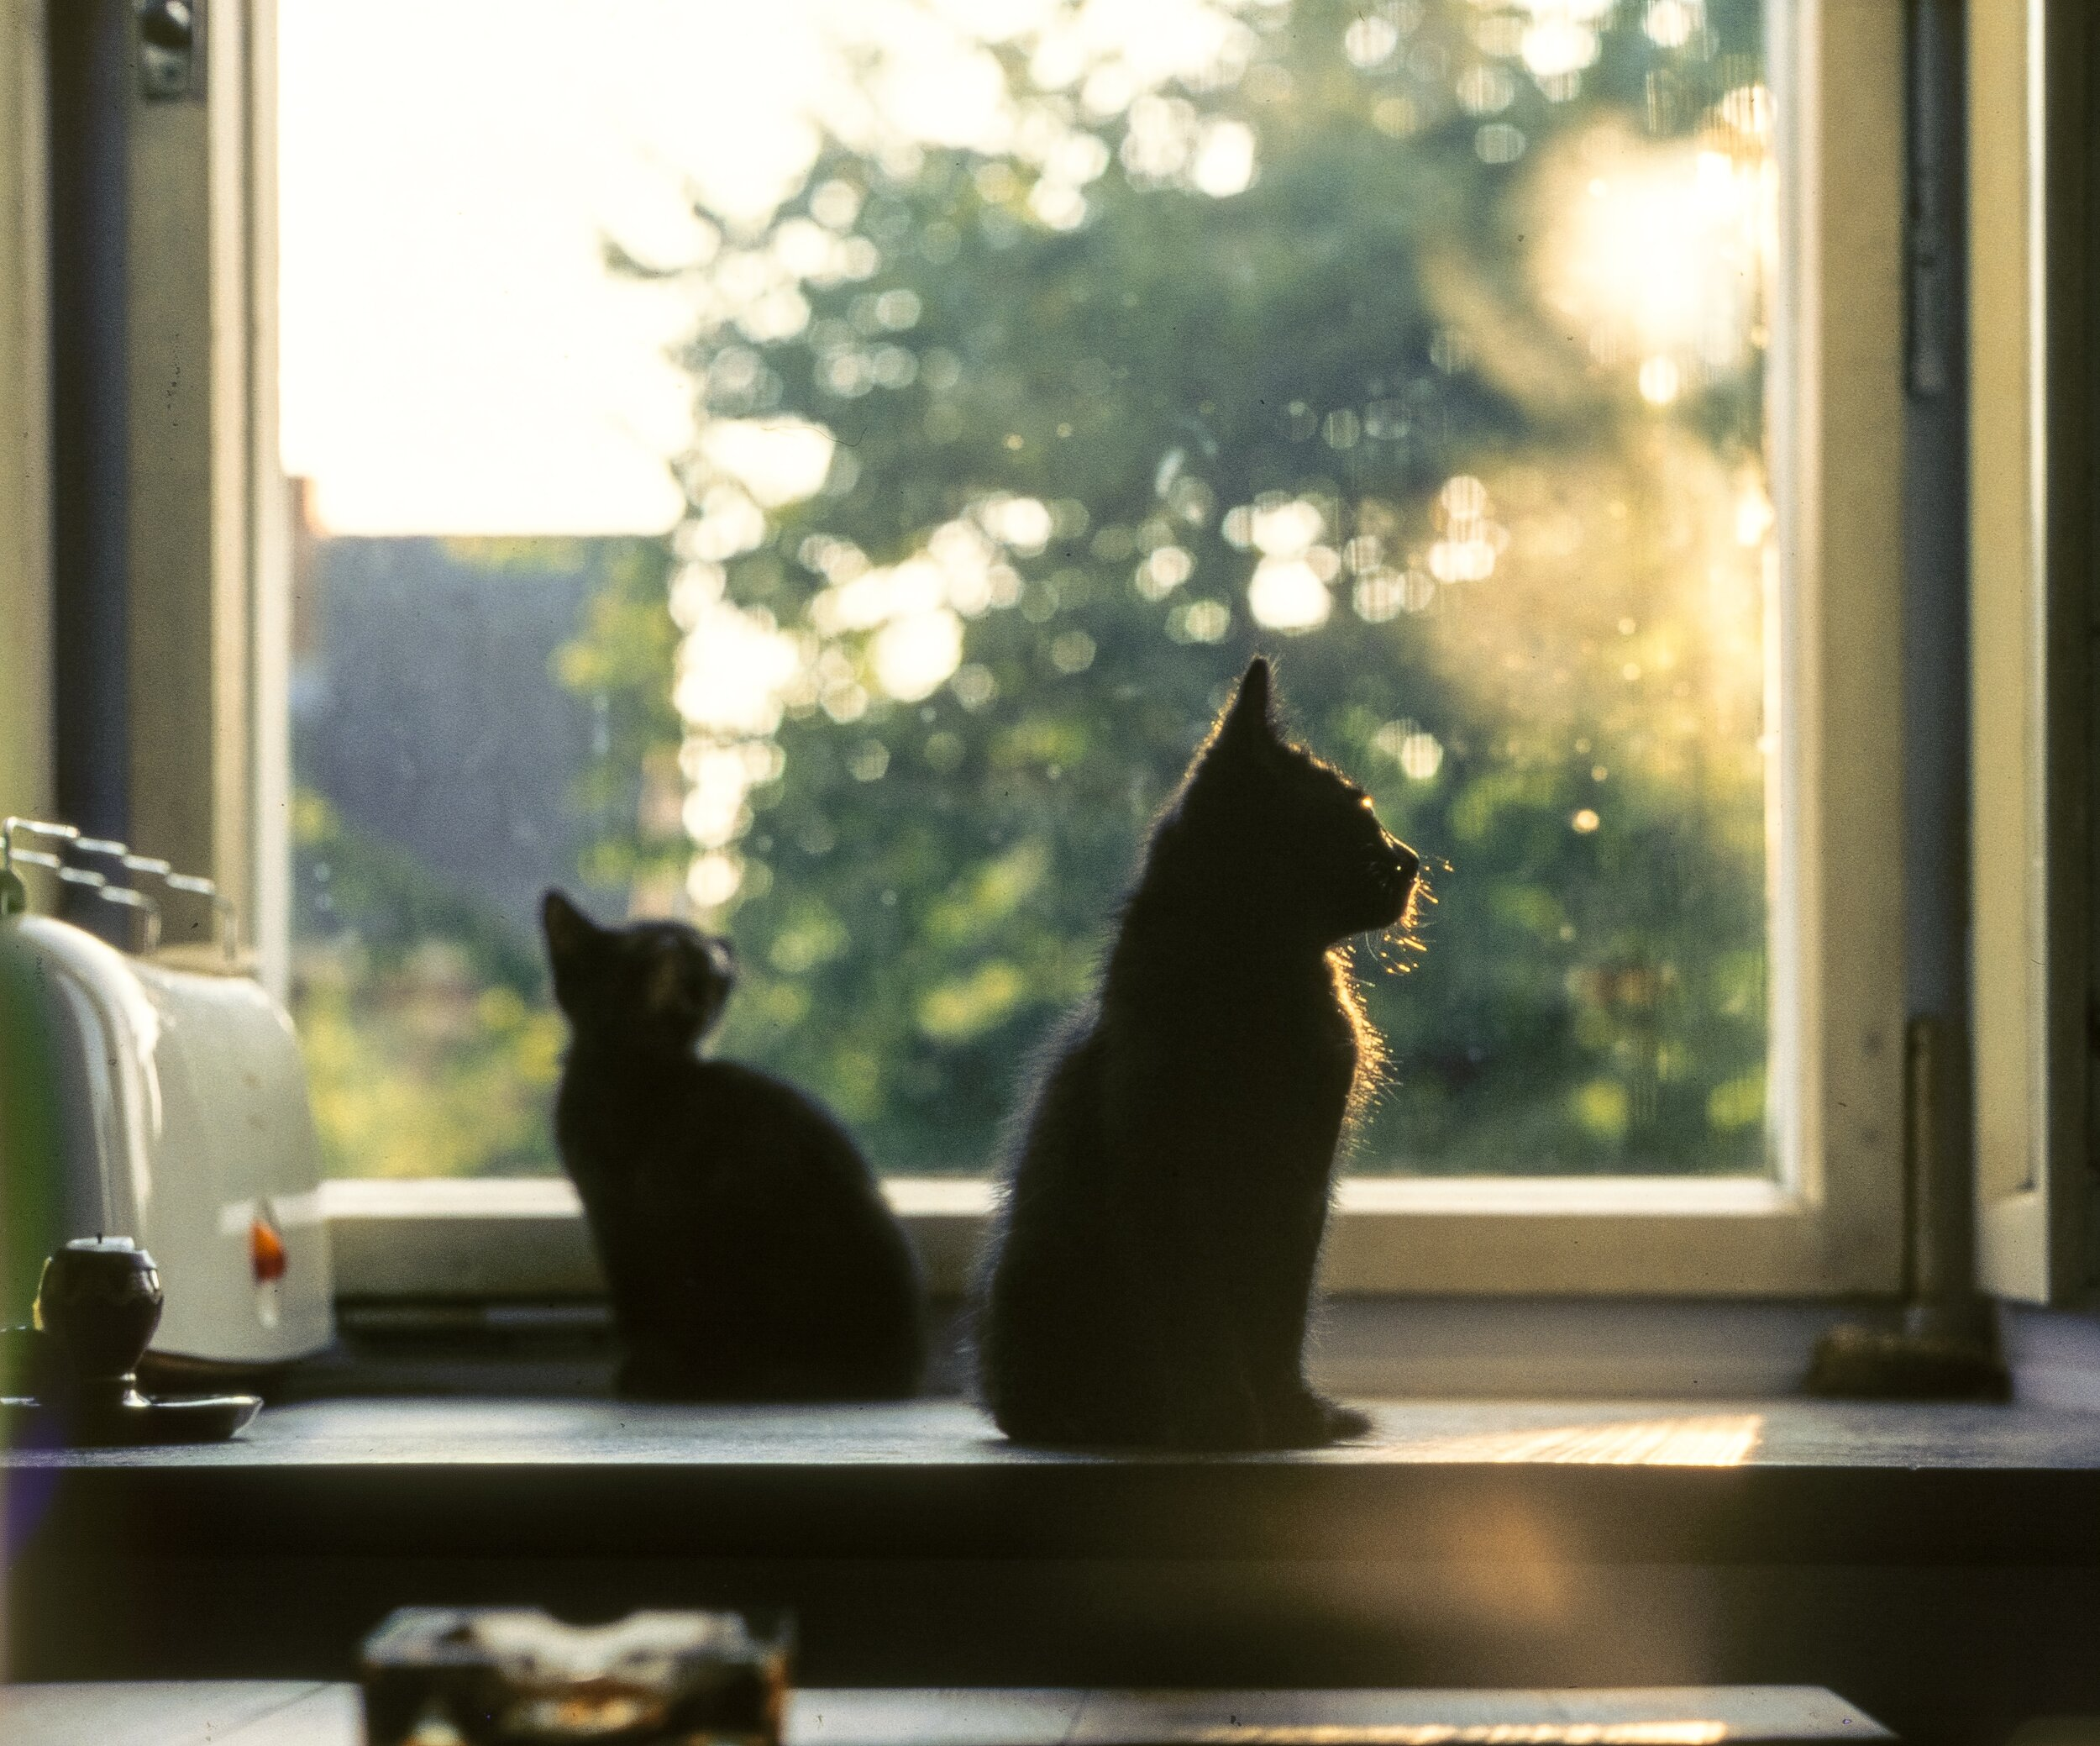 Windows are TVs for cats. Just more real life than reel life.